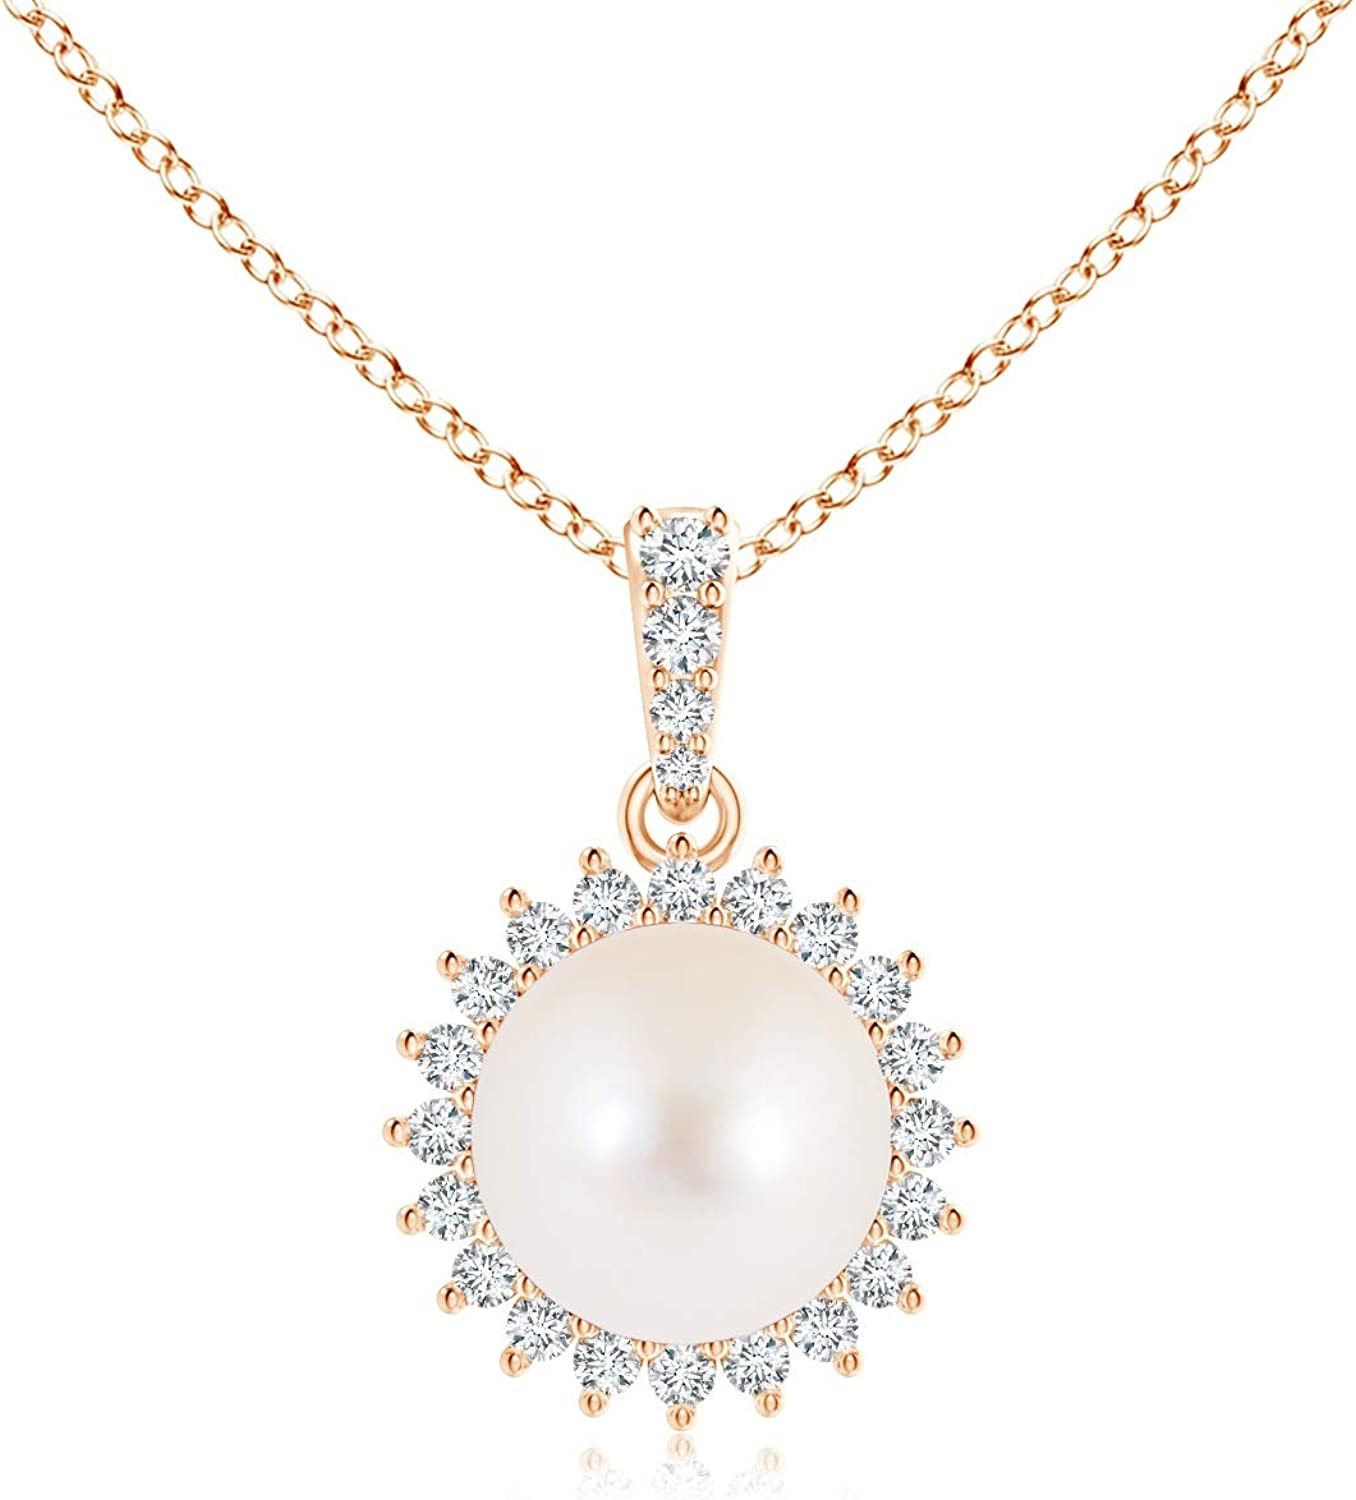 Vintage excellence Inspired Freshwater Cultured Freshwat Pearl 8mm Pendant Large-scale sale